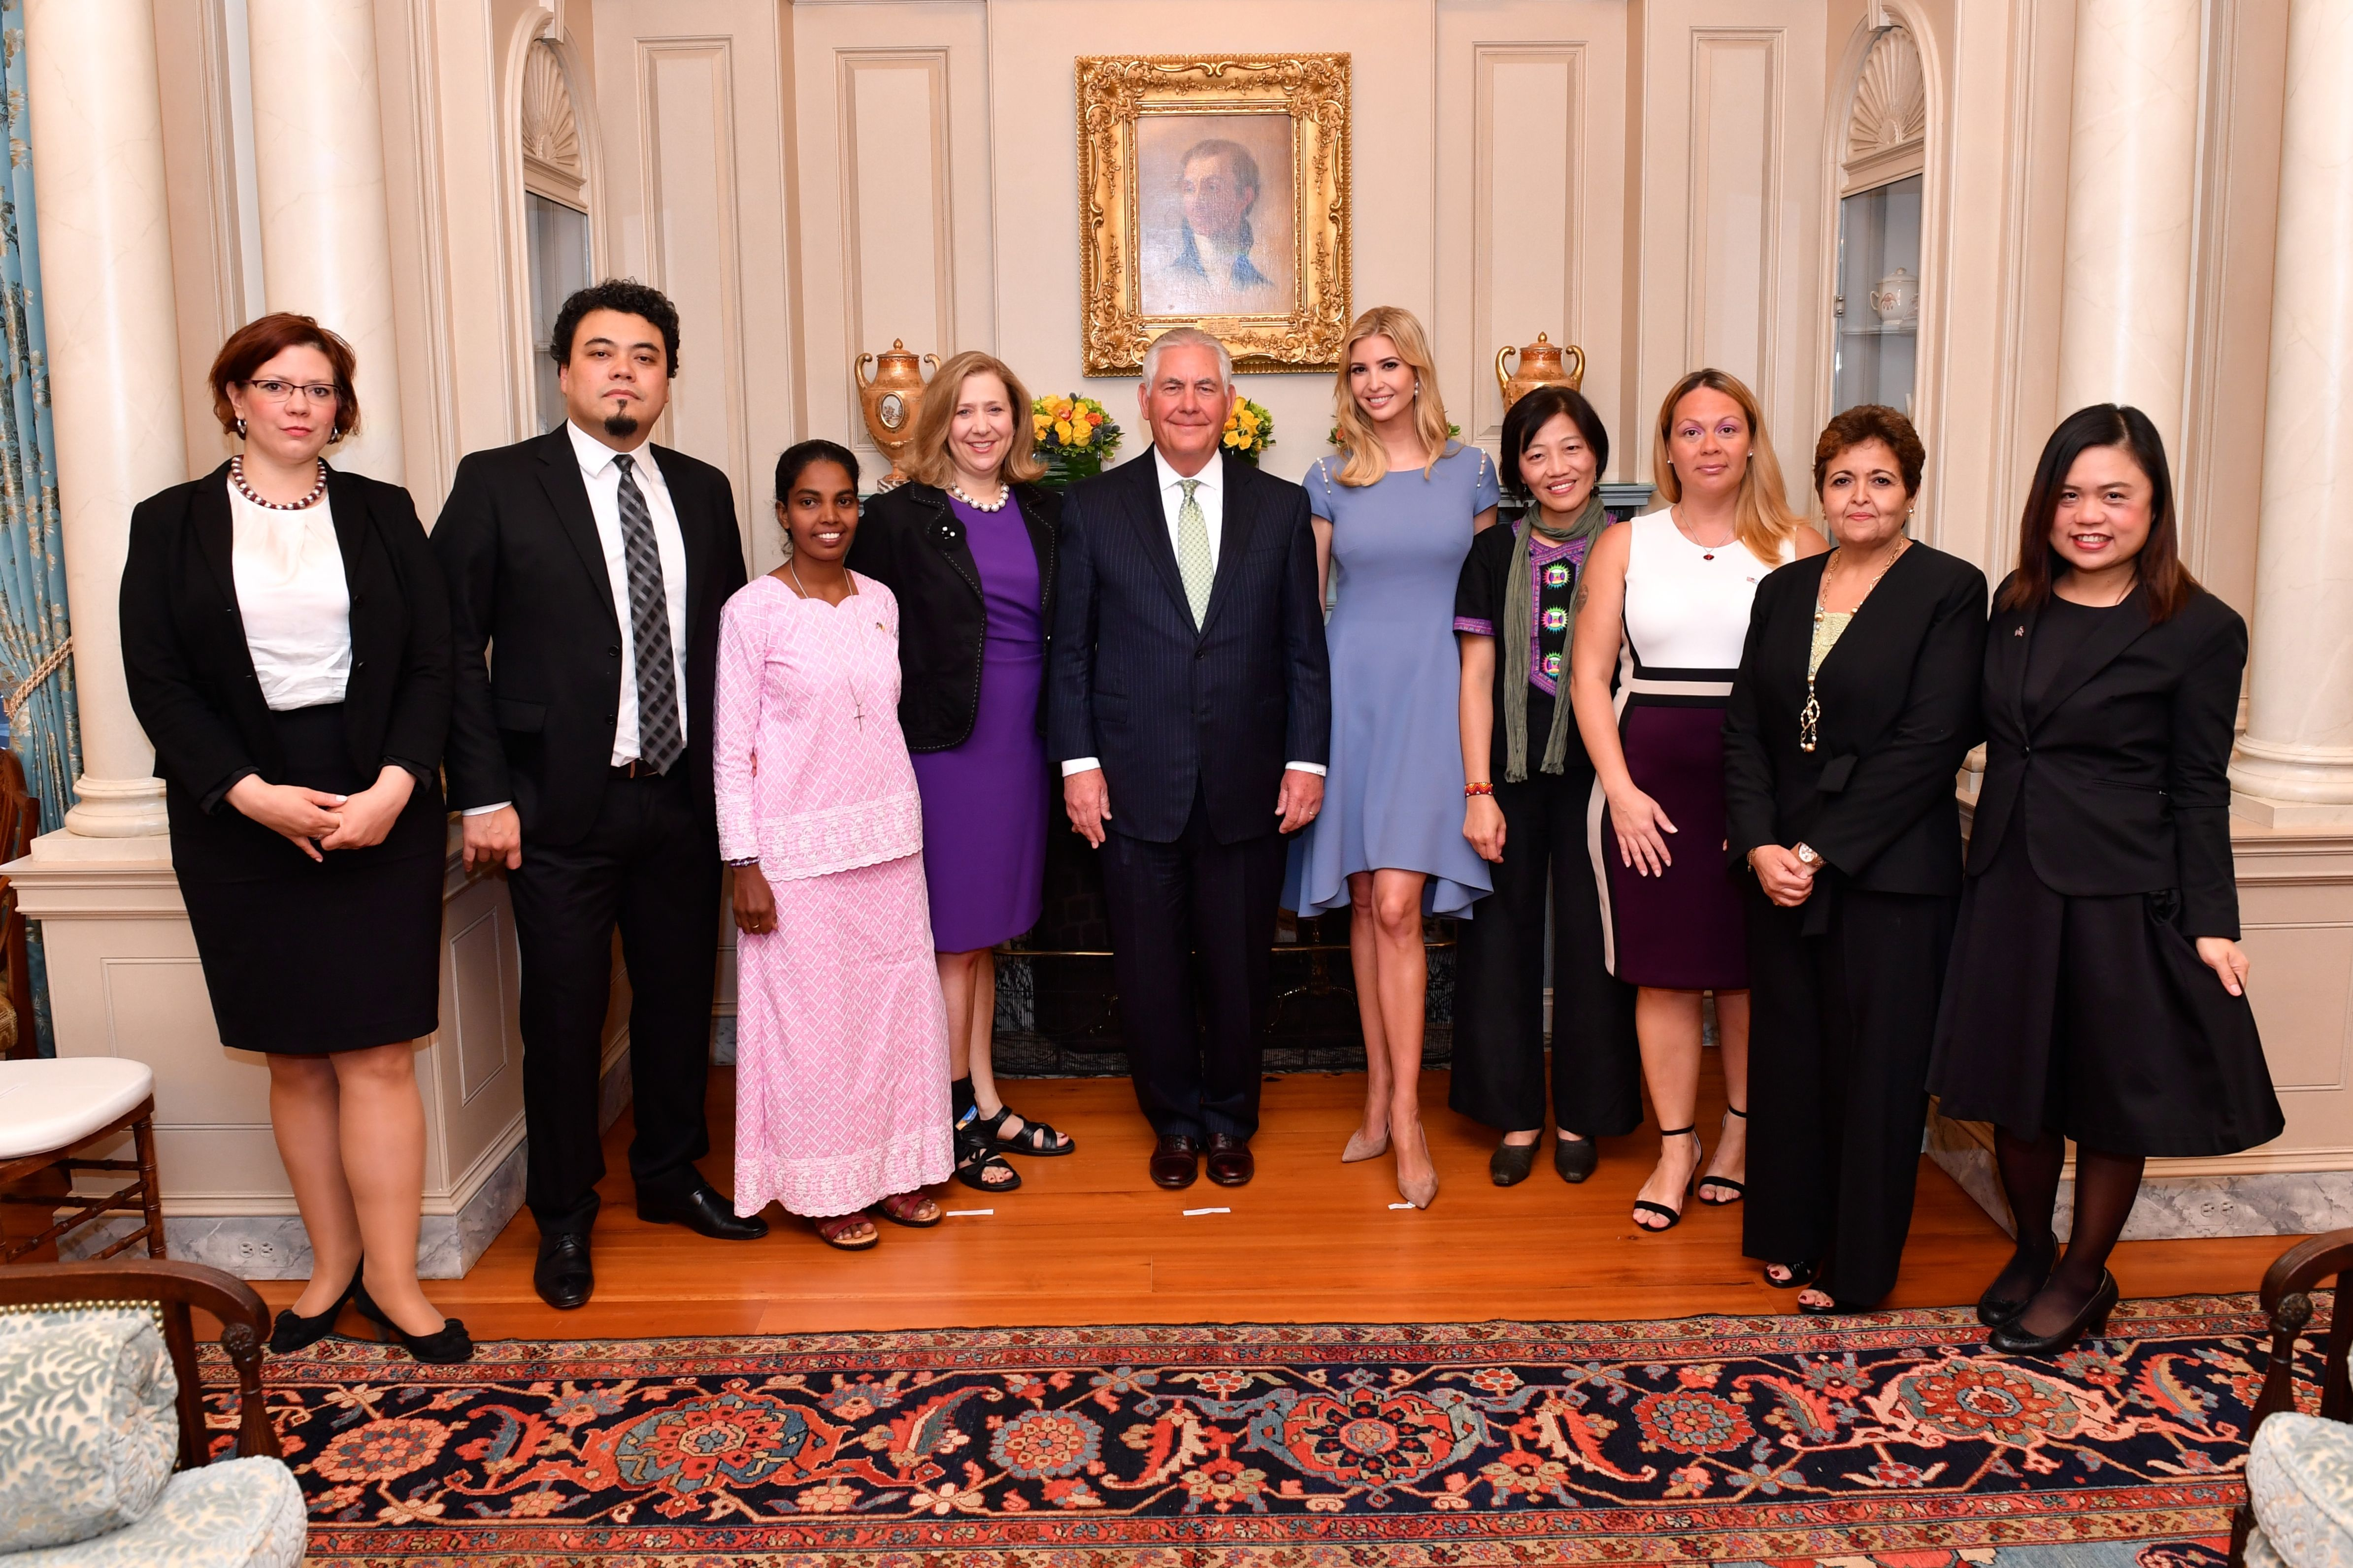 U.S. Secretary of State Rex Tillerson, Advisor to the President Ivanka Trump and Ambassador-at-Large to Monitor and Combat Trafficking in Persons and Senior Advisor to the Secretary of State Susan Coppedge pose for a photo with the 2017 Trafficking in Persons Heroes at the U.S. Department of State in Washington, D.C., on June 27, 2017. The 2017 TIP Heroes are Alika Kinan of #Argentina, Leonardo Sakamoto of #Brazil, Vanaja Jasphine of #Cameroon, Viktoria Sebhelyi of #Hungary, Mahesh Muralidhar Bhagwat of #India, Amina Oufroukhi of #Morocco, Allison Lee of #Taiwan, and Boom Mosby of #Thailand. [State Department photo/ Public Domain]